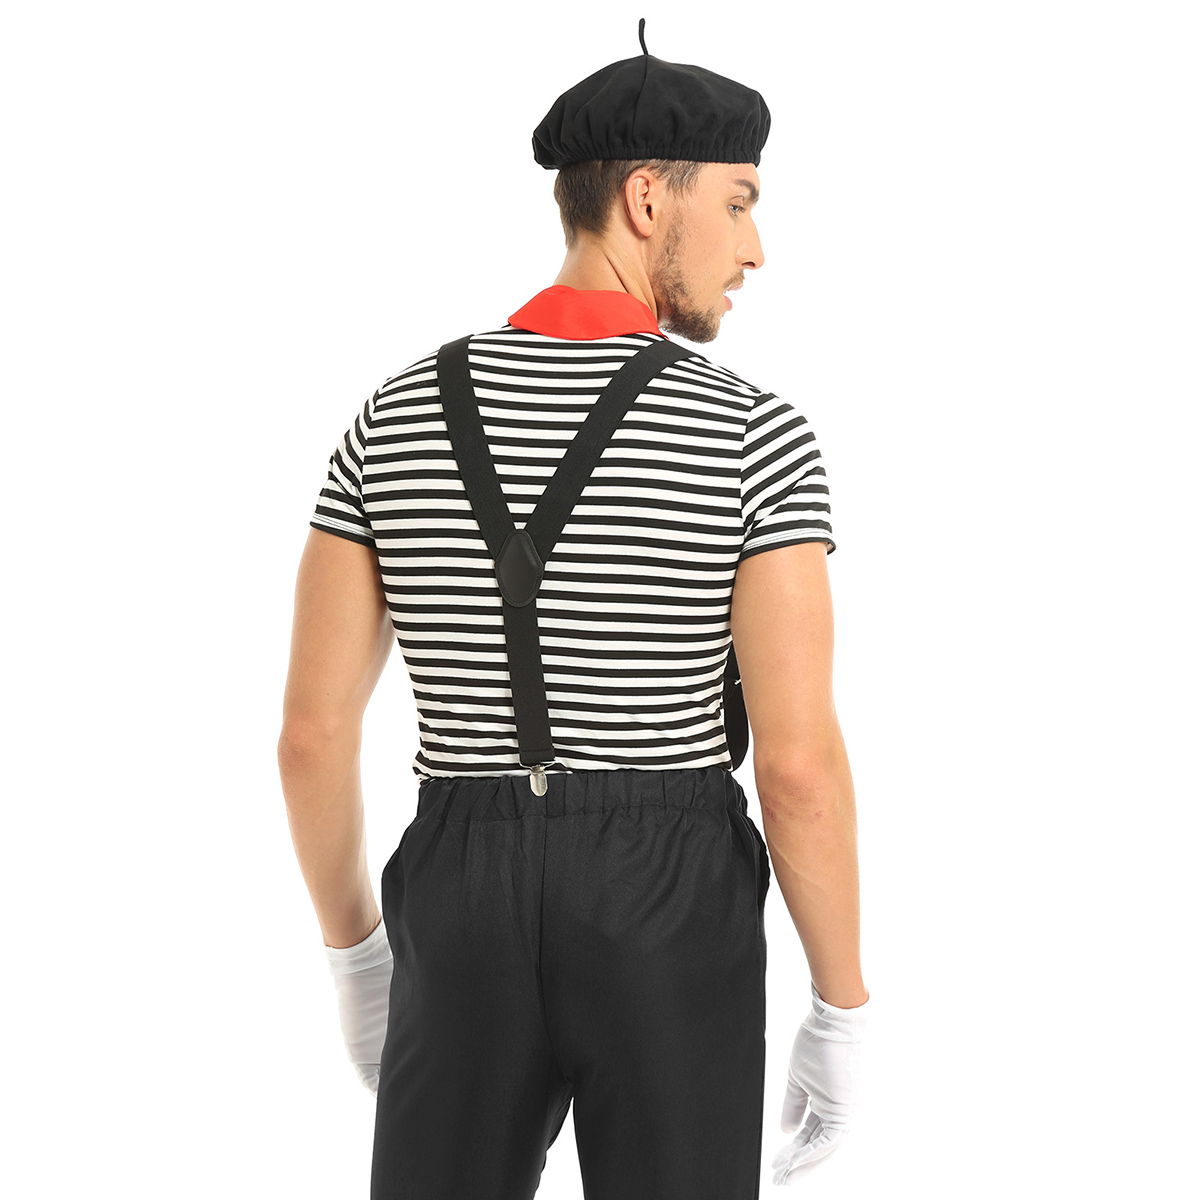 5Pcs Men French Artist Outfit Halloween Cosplay Costume Striped T-shirt Uniform